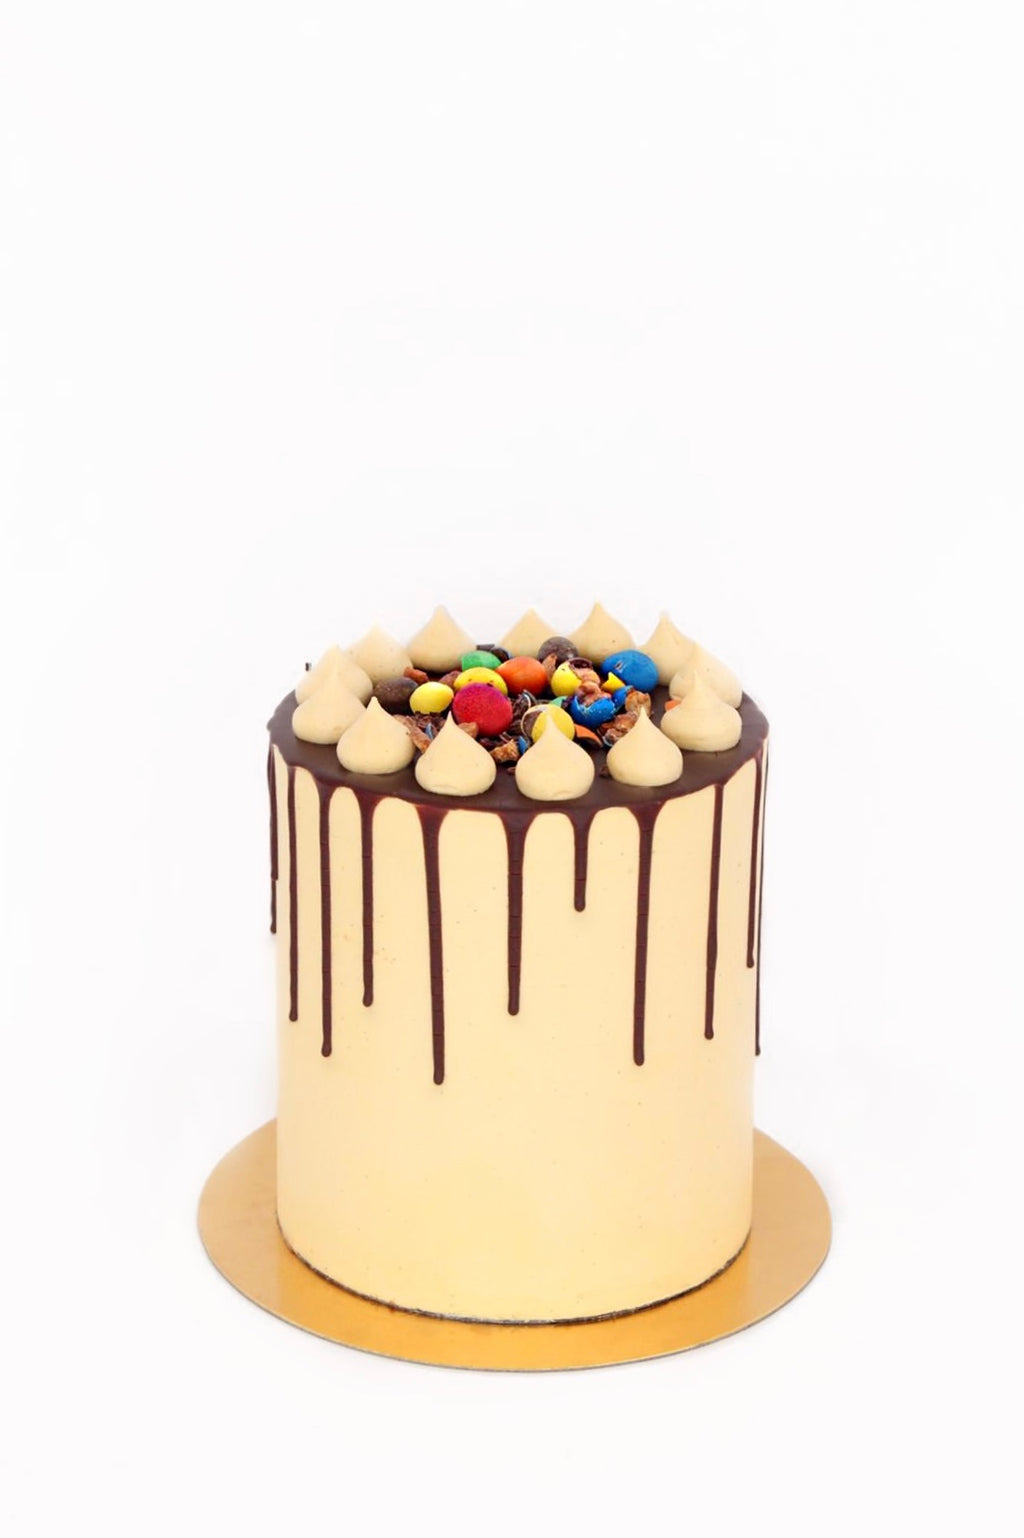 Chocolate Peanut Butter Cake (GF)